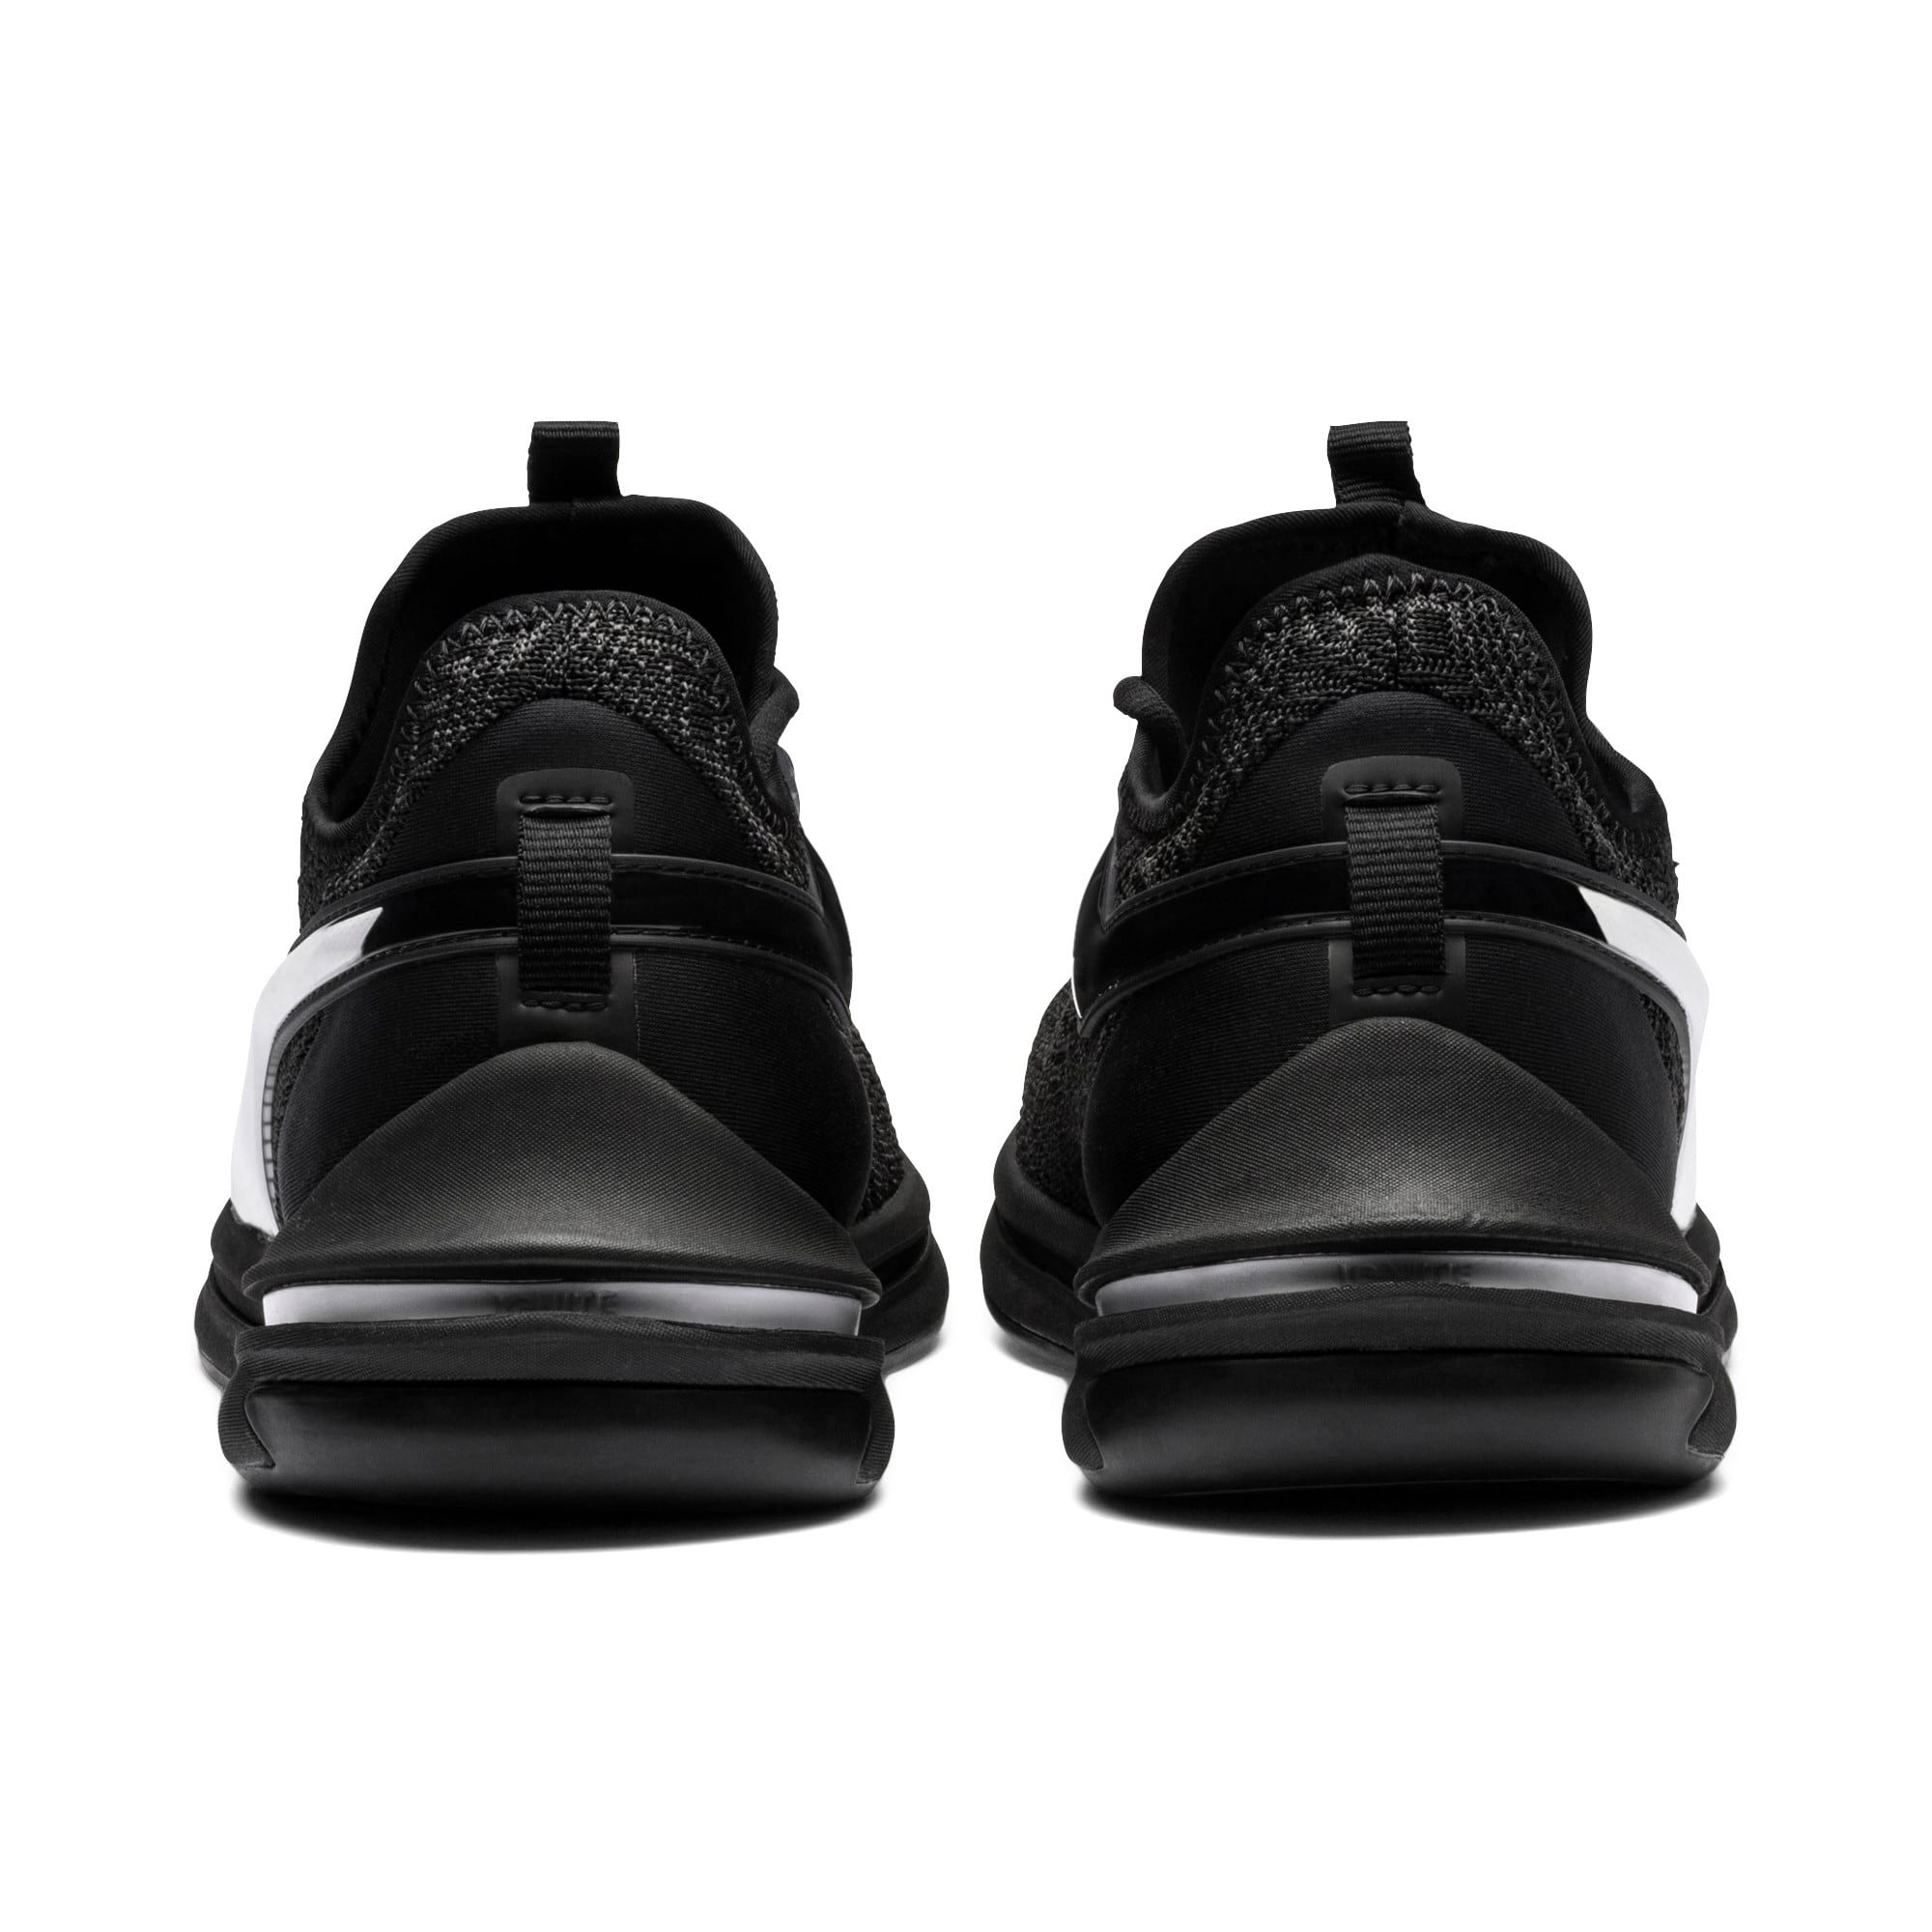 Thumbnail 3 of IGNITE Limitless SR-71 Running Shoes, Puma Black, medium-IND